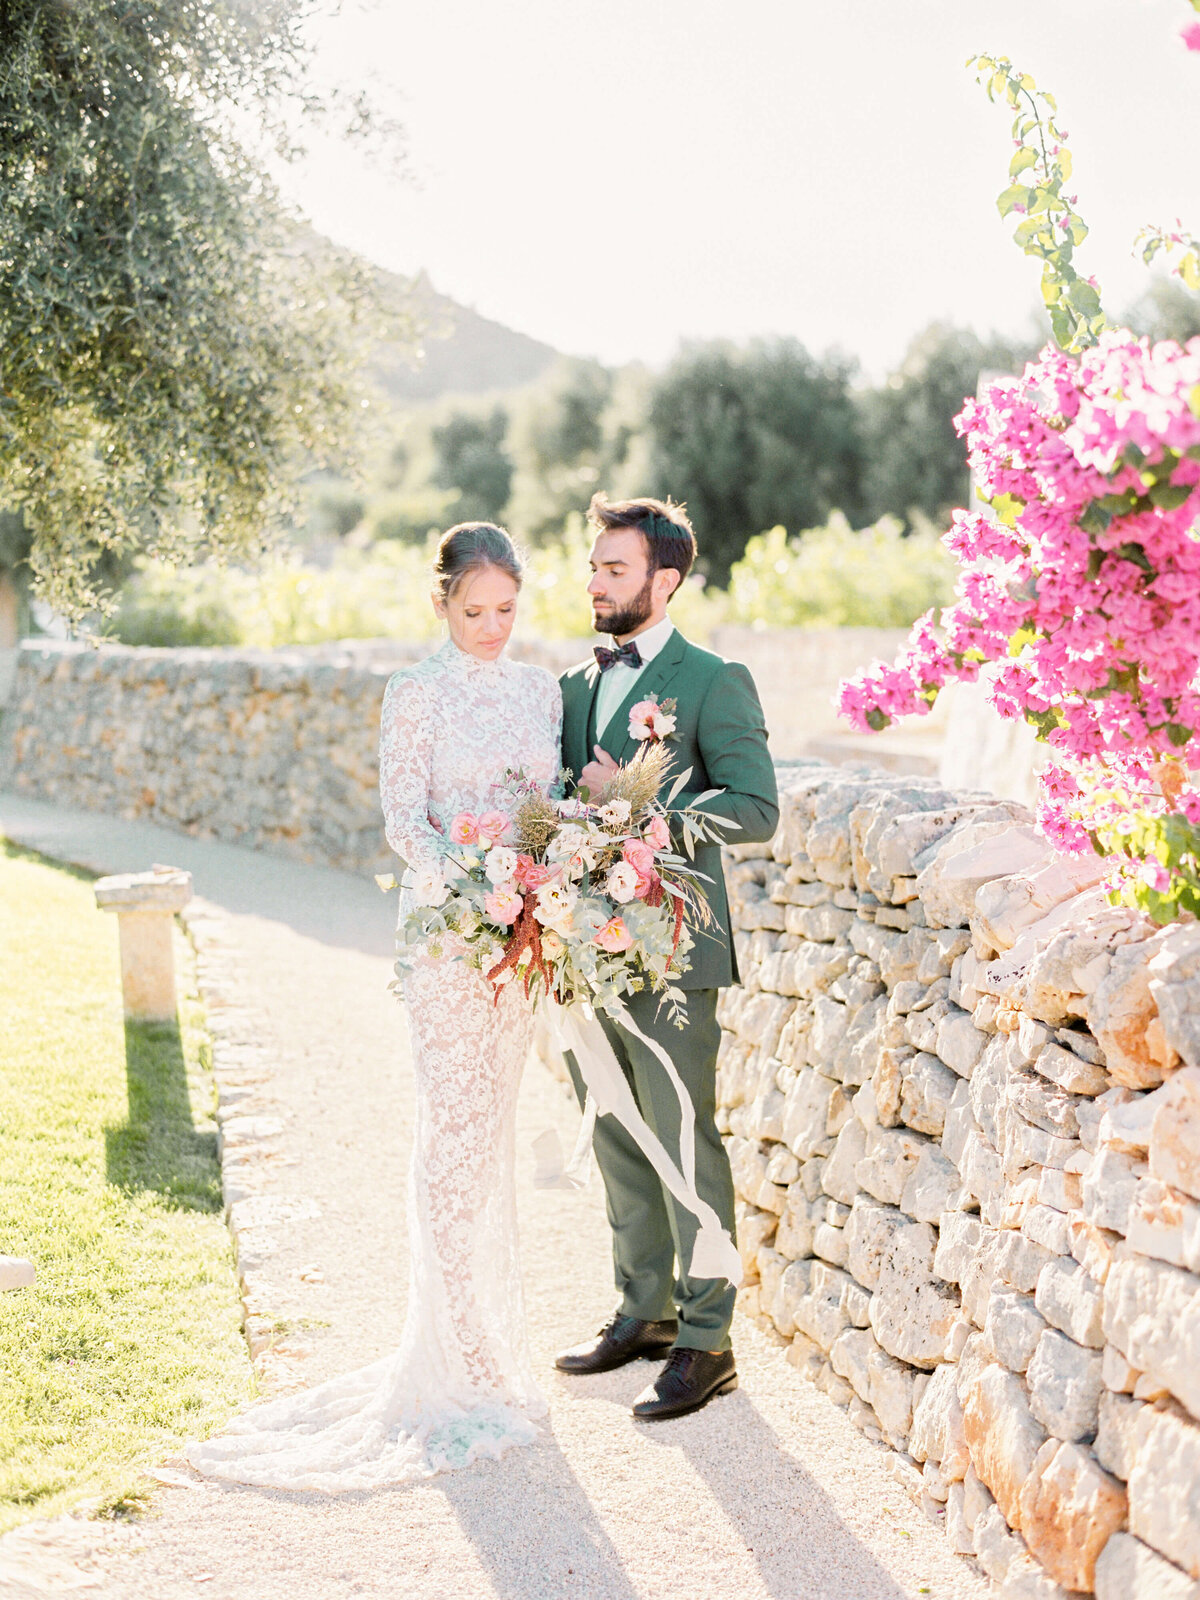 Styled Shoot - Honeymoon - Masseria - Puglia - Italy 0195